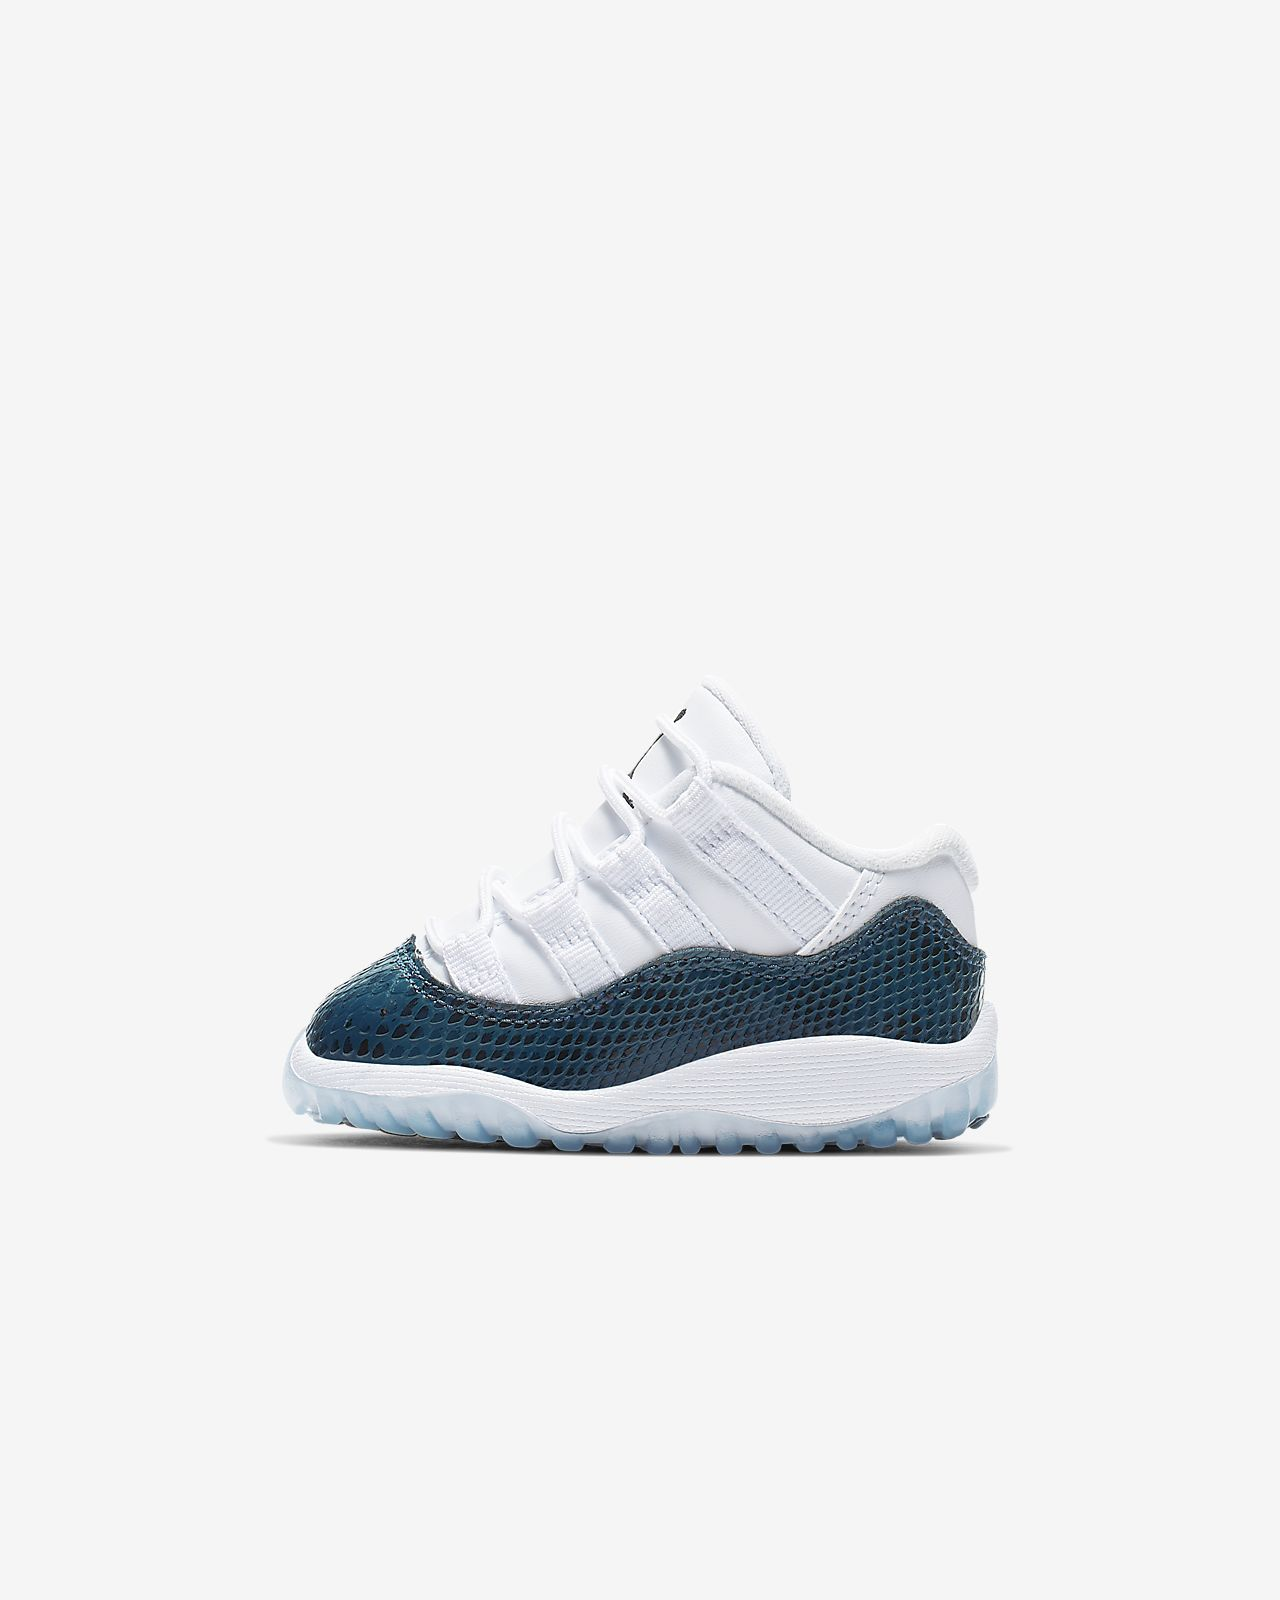 buy popular 3e07a 09dc4 ... Jordan 11 Retro Low LE Baby Toddler Shoe